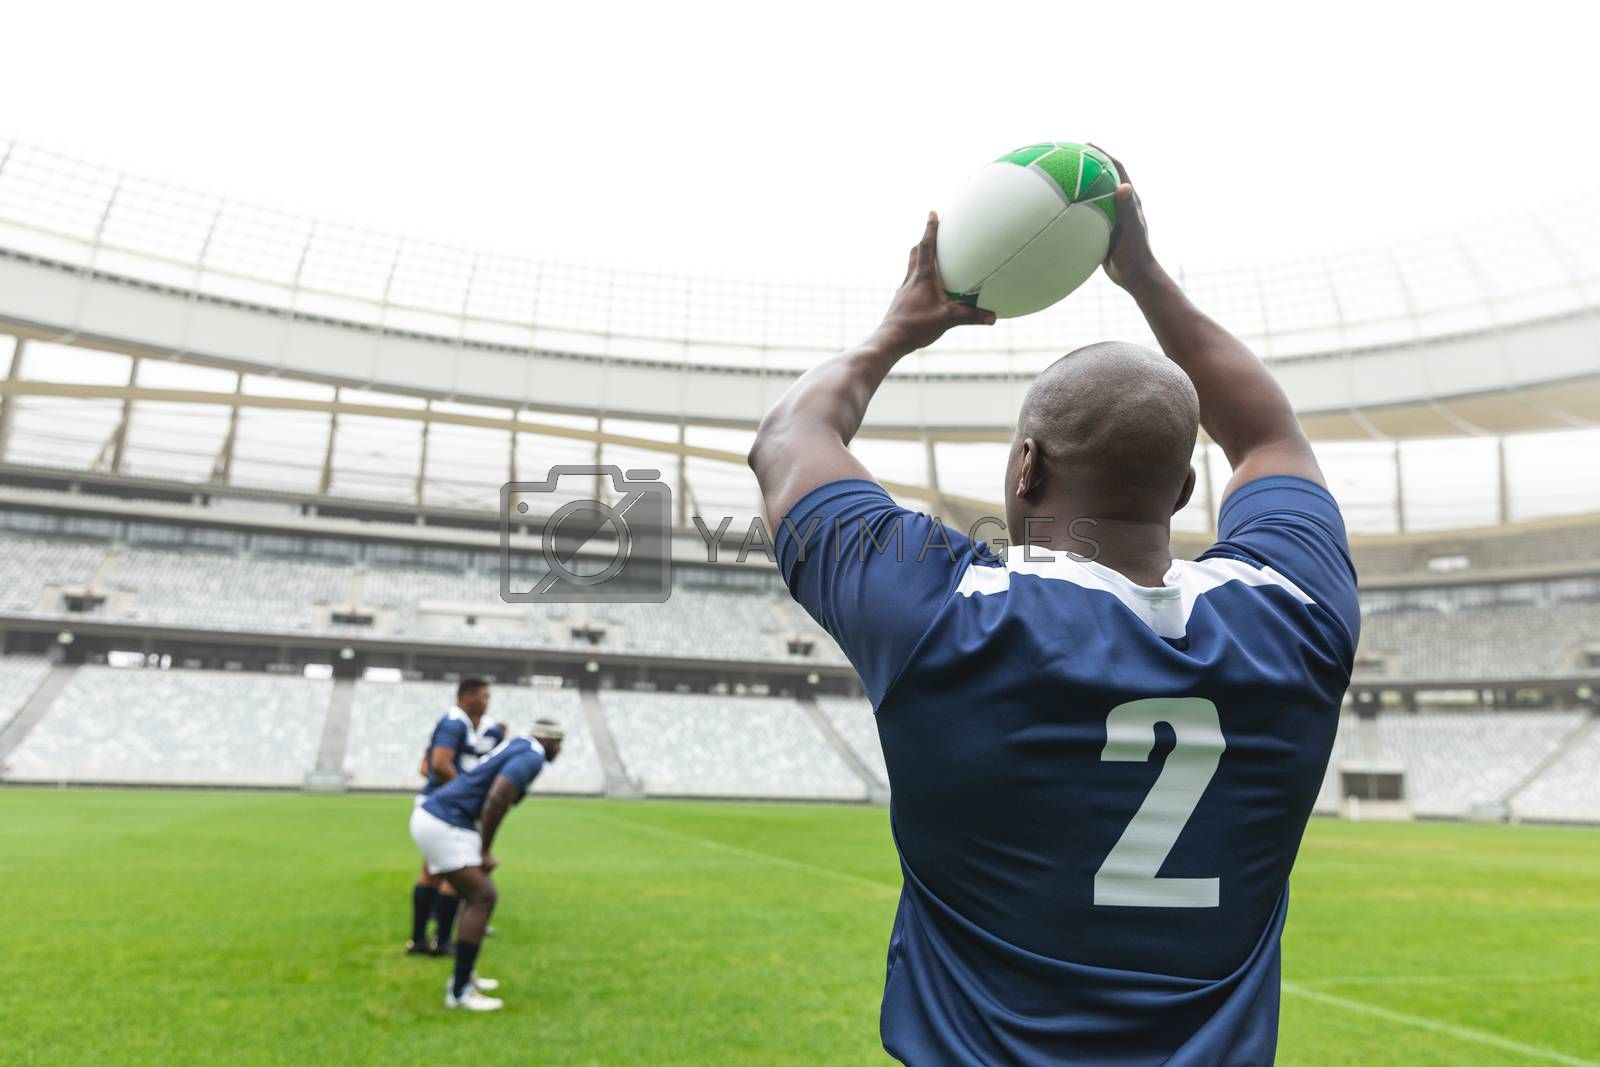 African American male rugby player throwing rugby ball in stadium by Wavebreakmedia